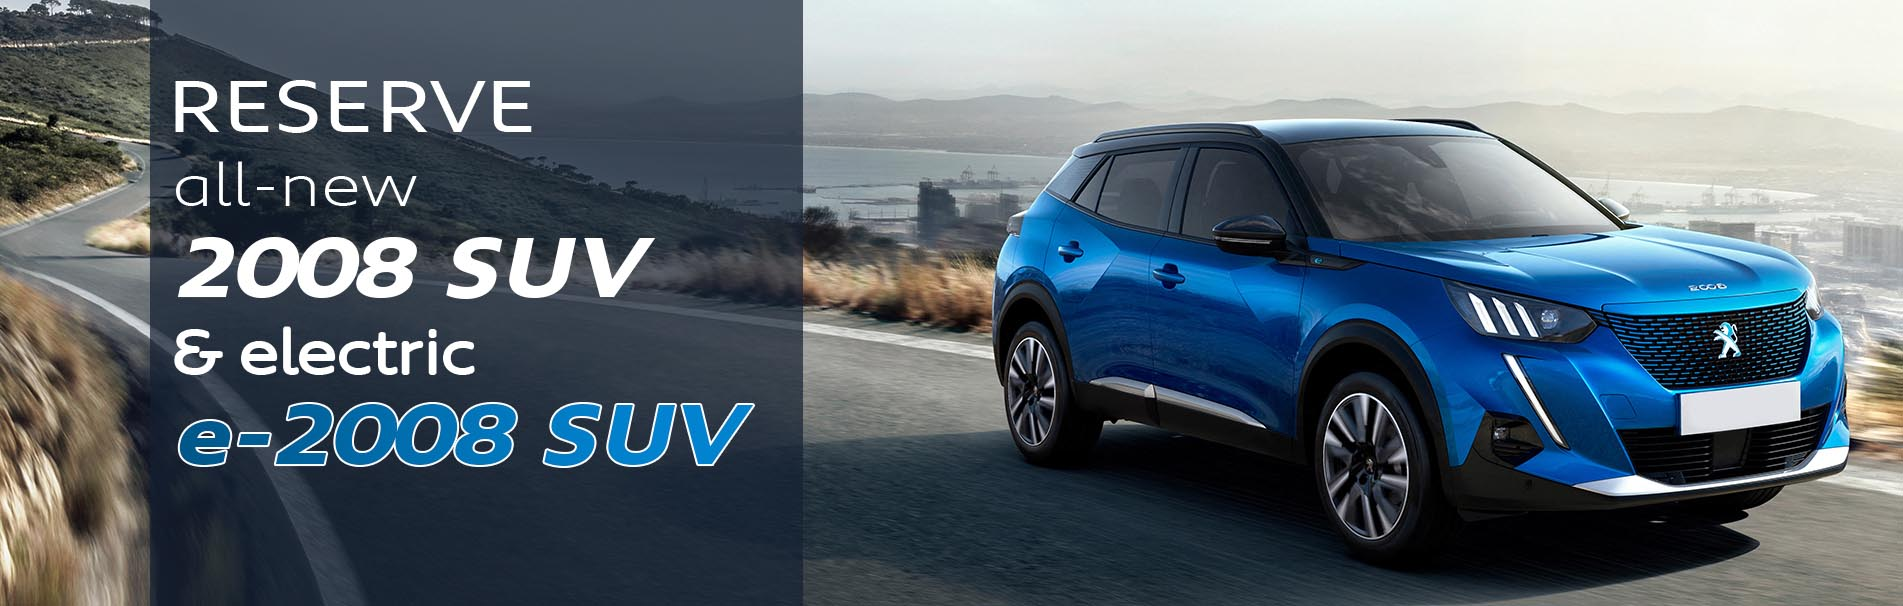 reserve-your-all-new-peugeot-2008-suv-sli